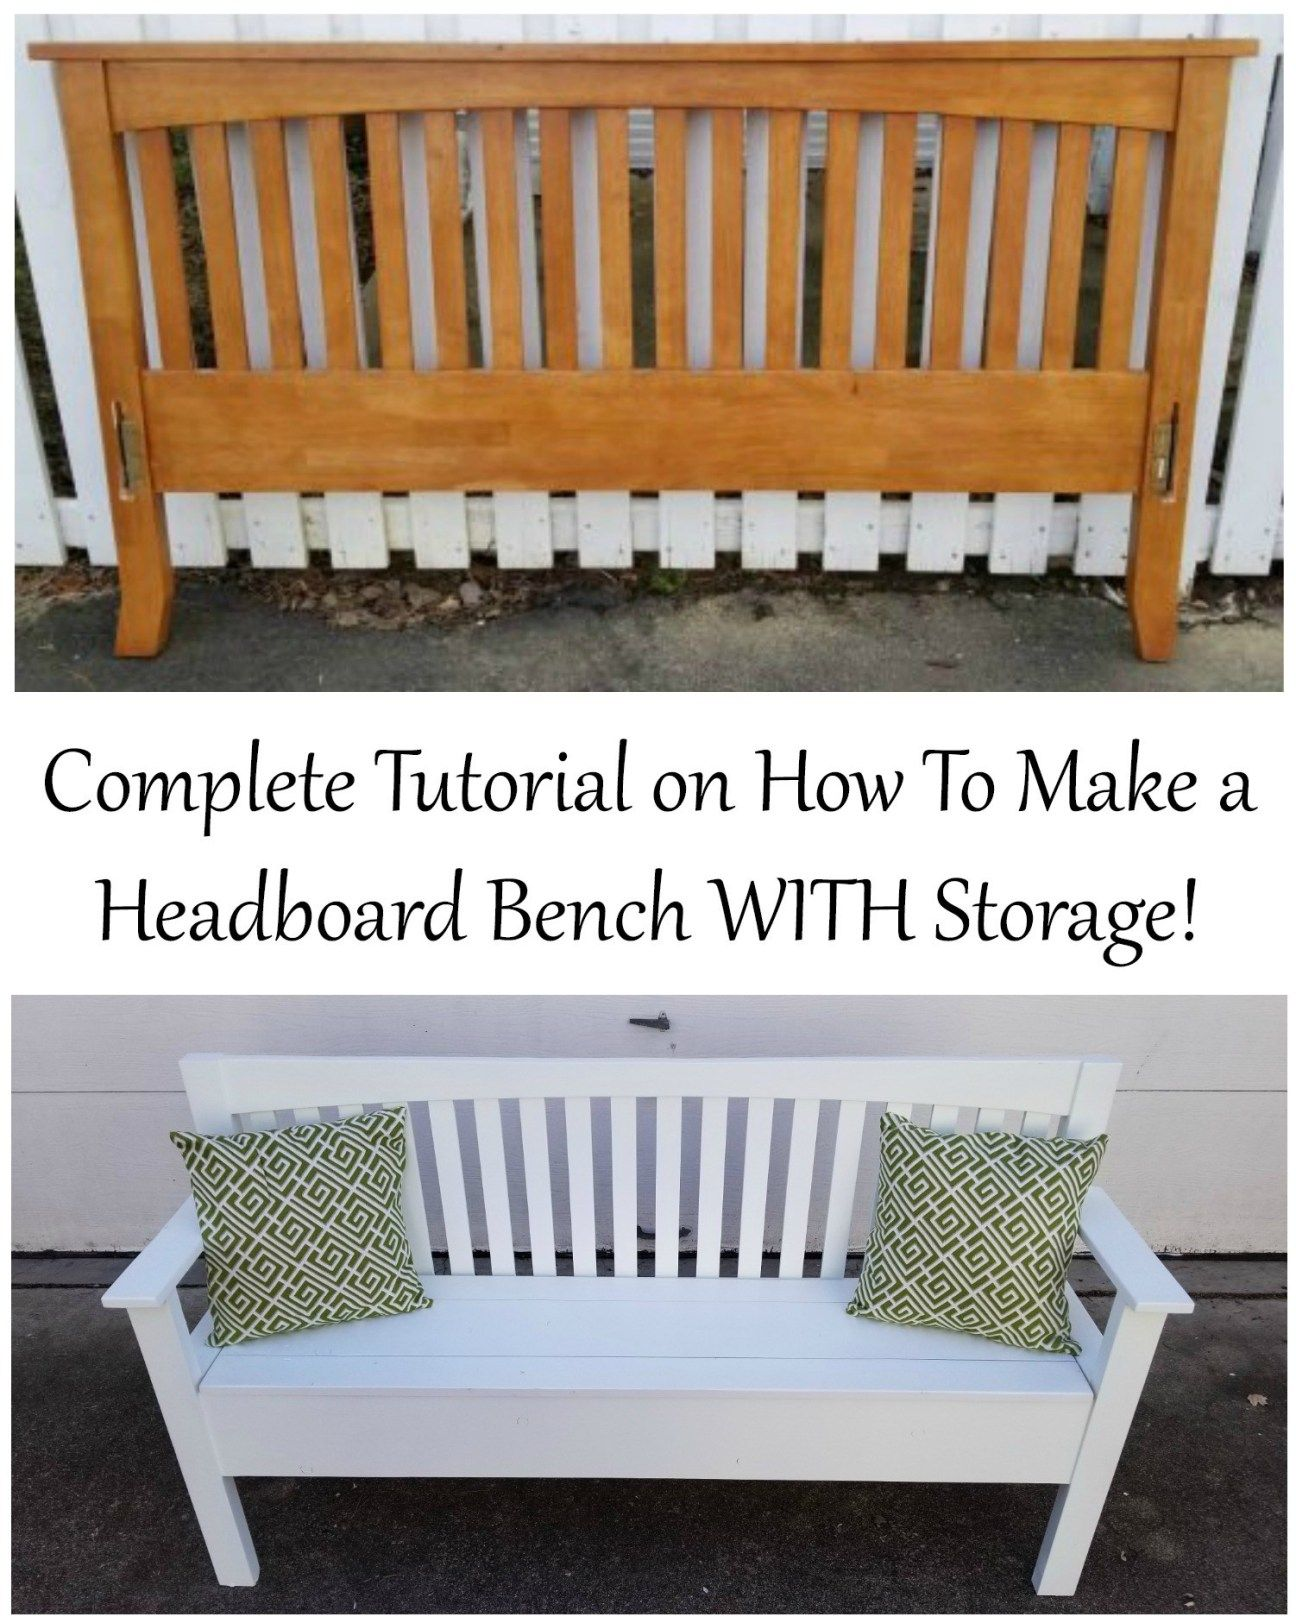 Mission Style Headboard Bench with Storage Headboard